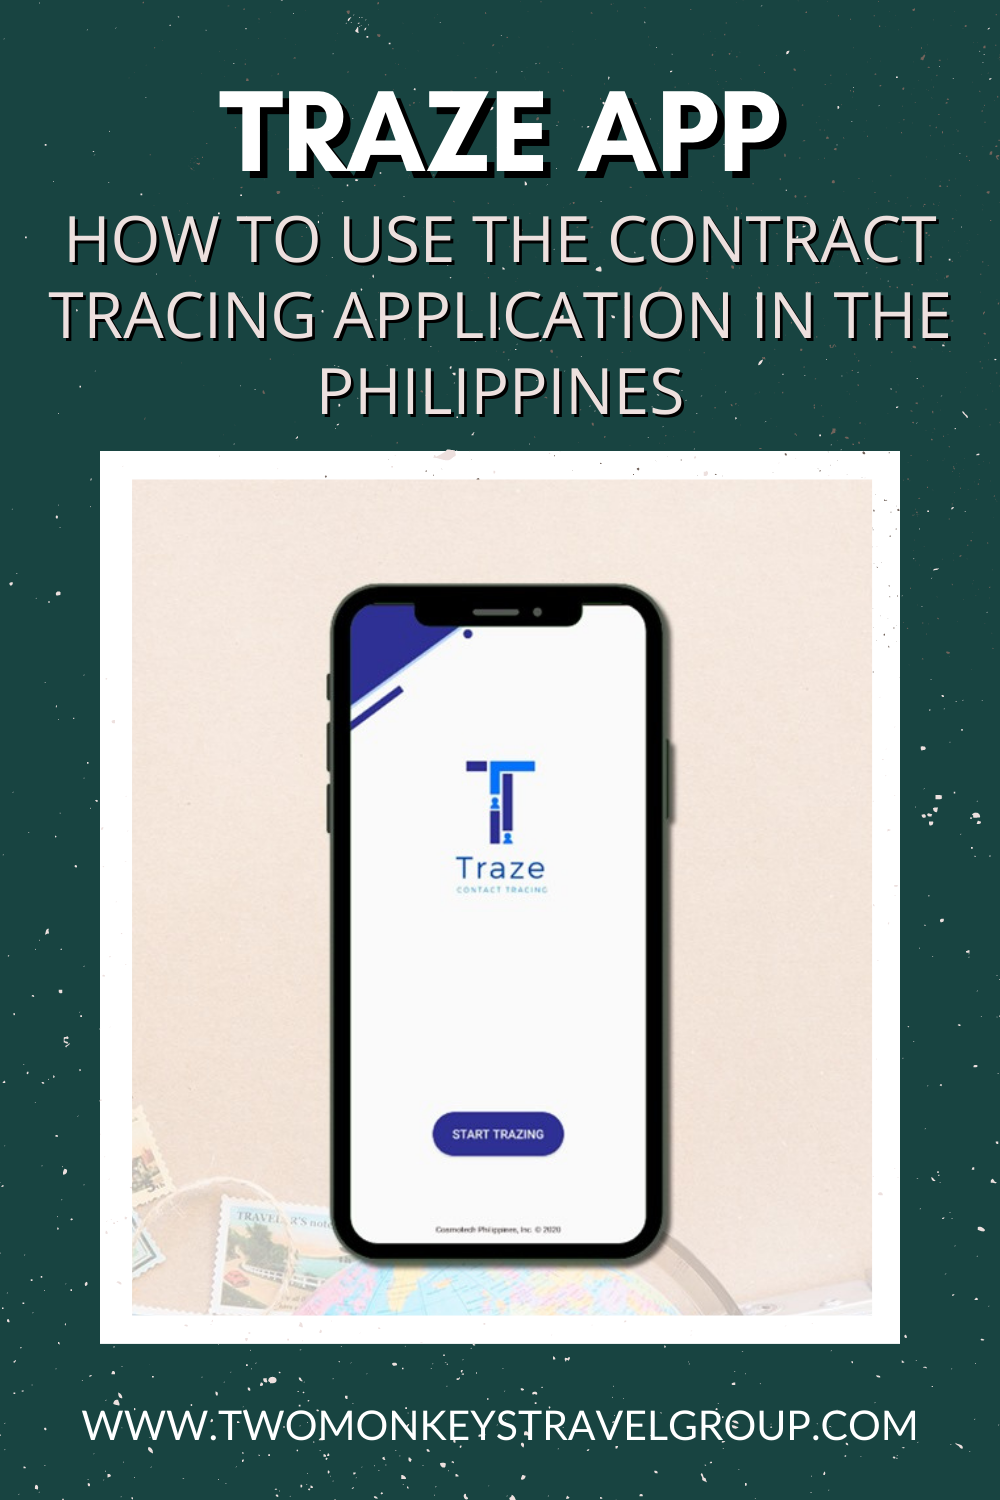 Traze App How To Use The Contract Tracing Application in the Philippines